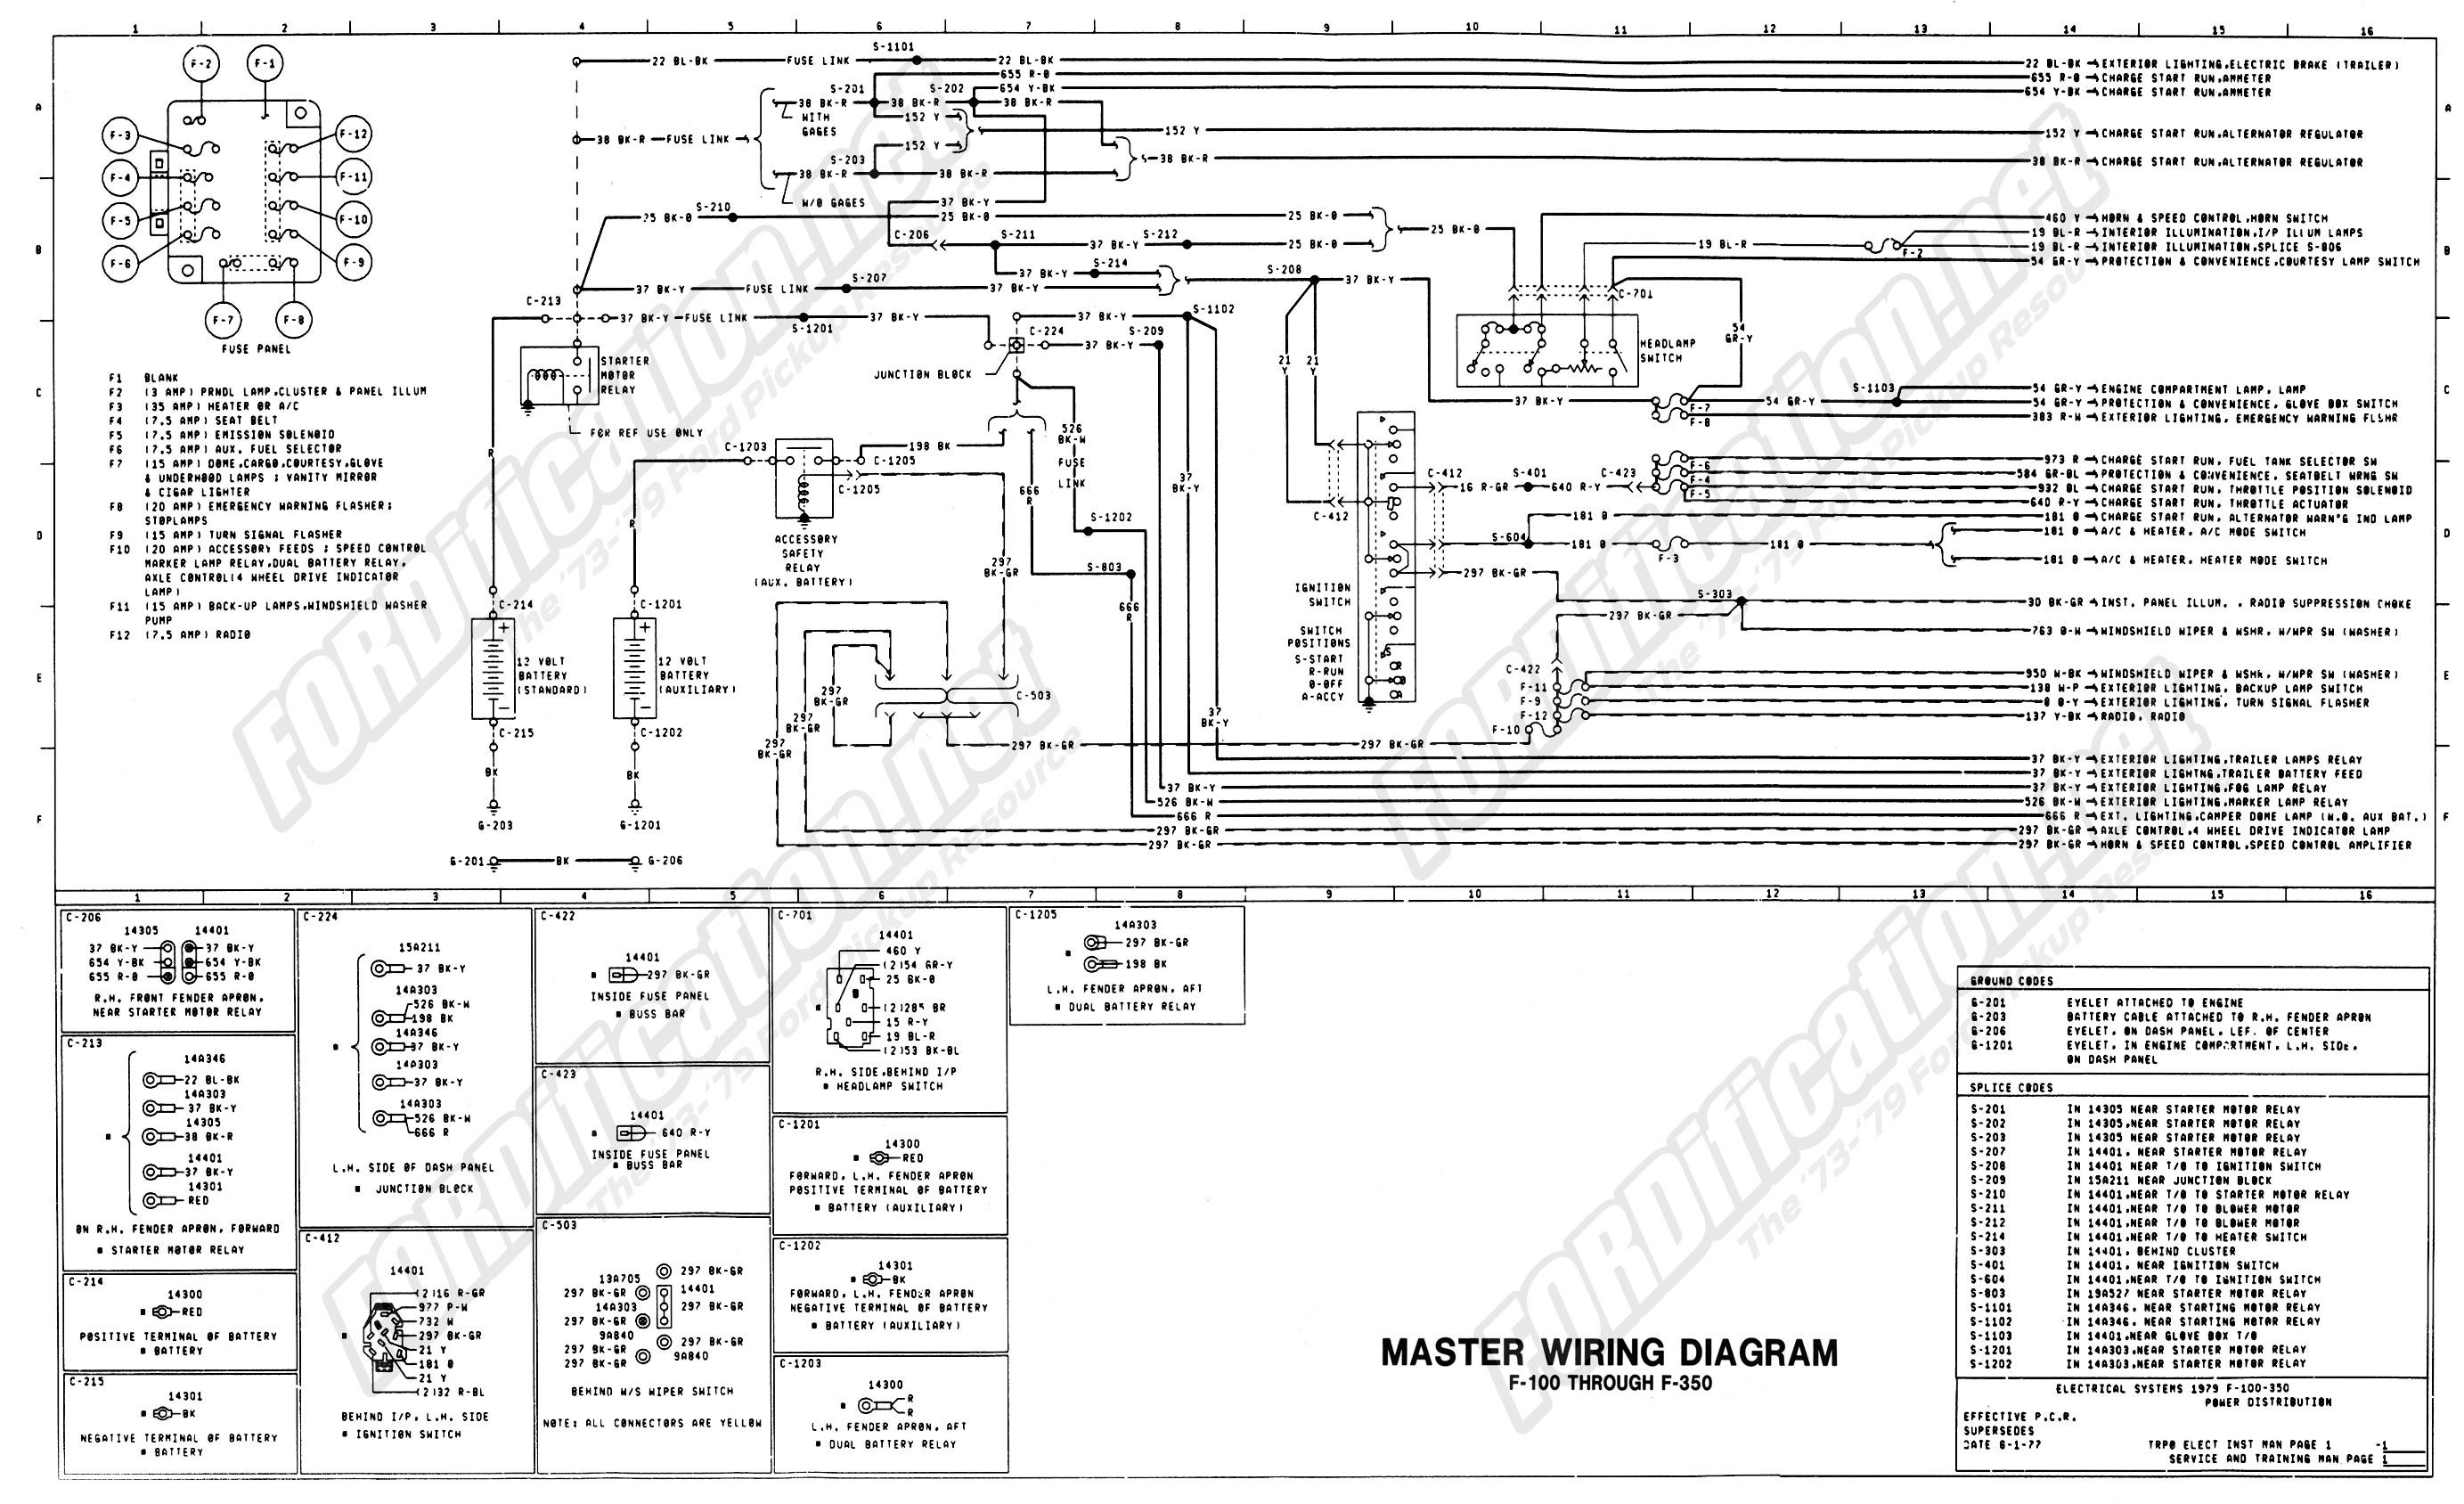 Free Wiring Diagrams For Dodge Trucks Reference Mack Truck Fuse Box Diagram Awesome 1969 Ford F 350 Wiring Schematic